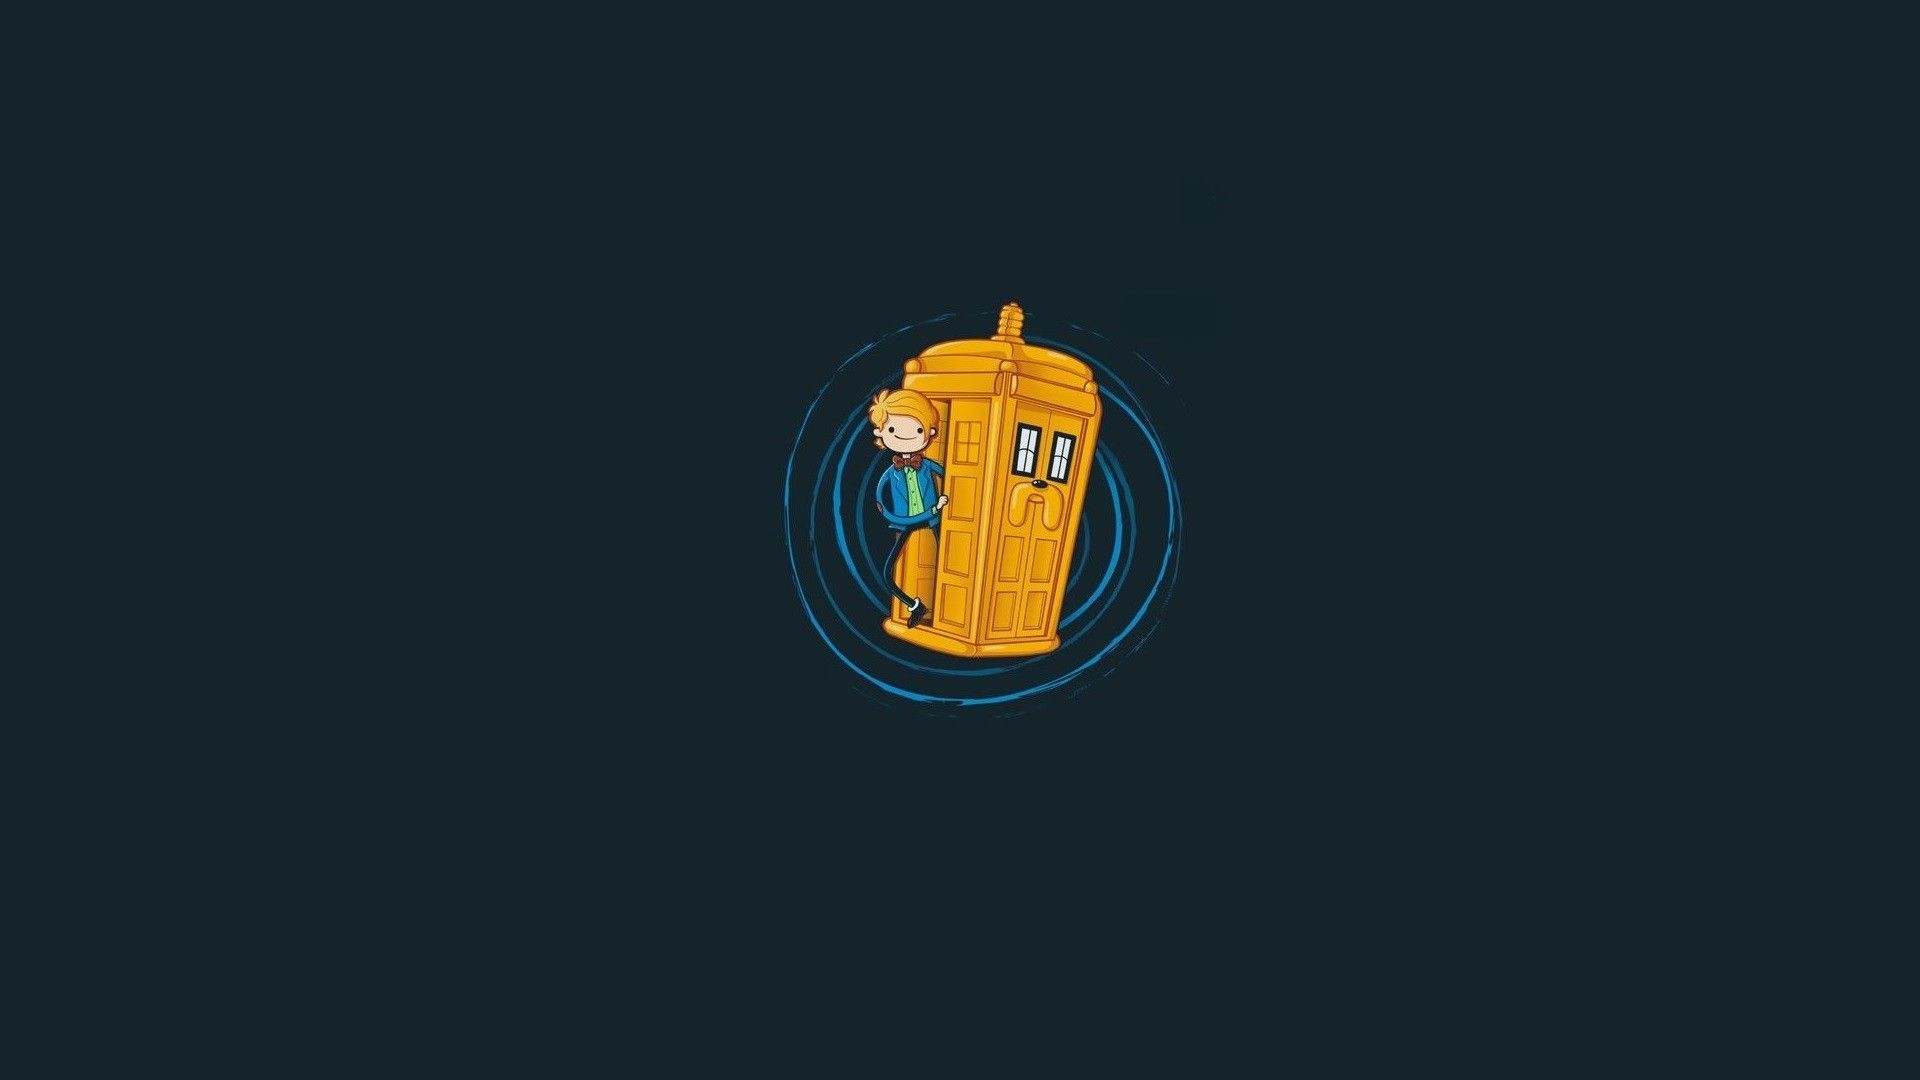 1920x1080 Adventure-Time-Doctor-Who-crossover-wallpaper-wpt8201755